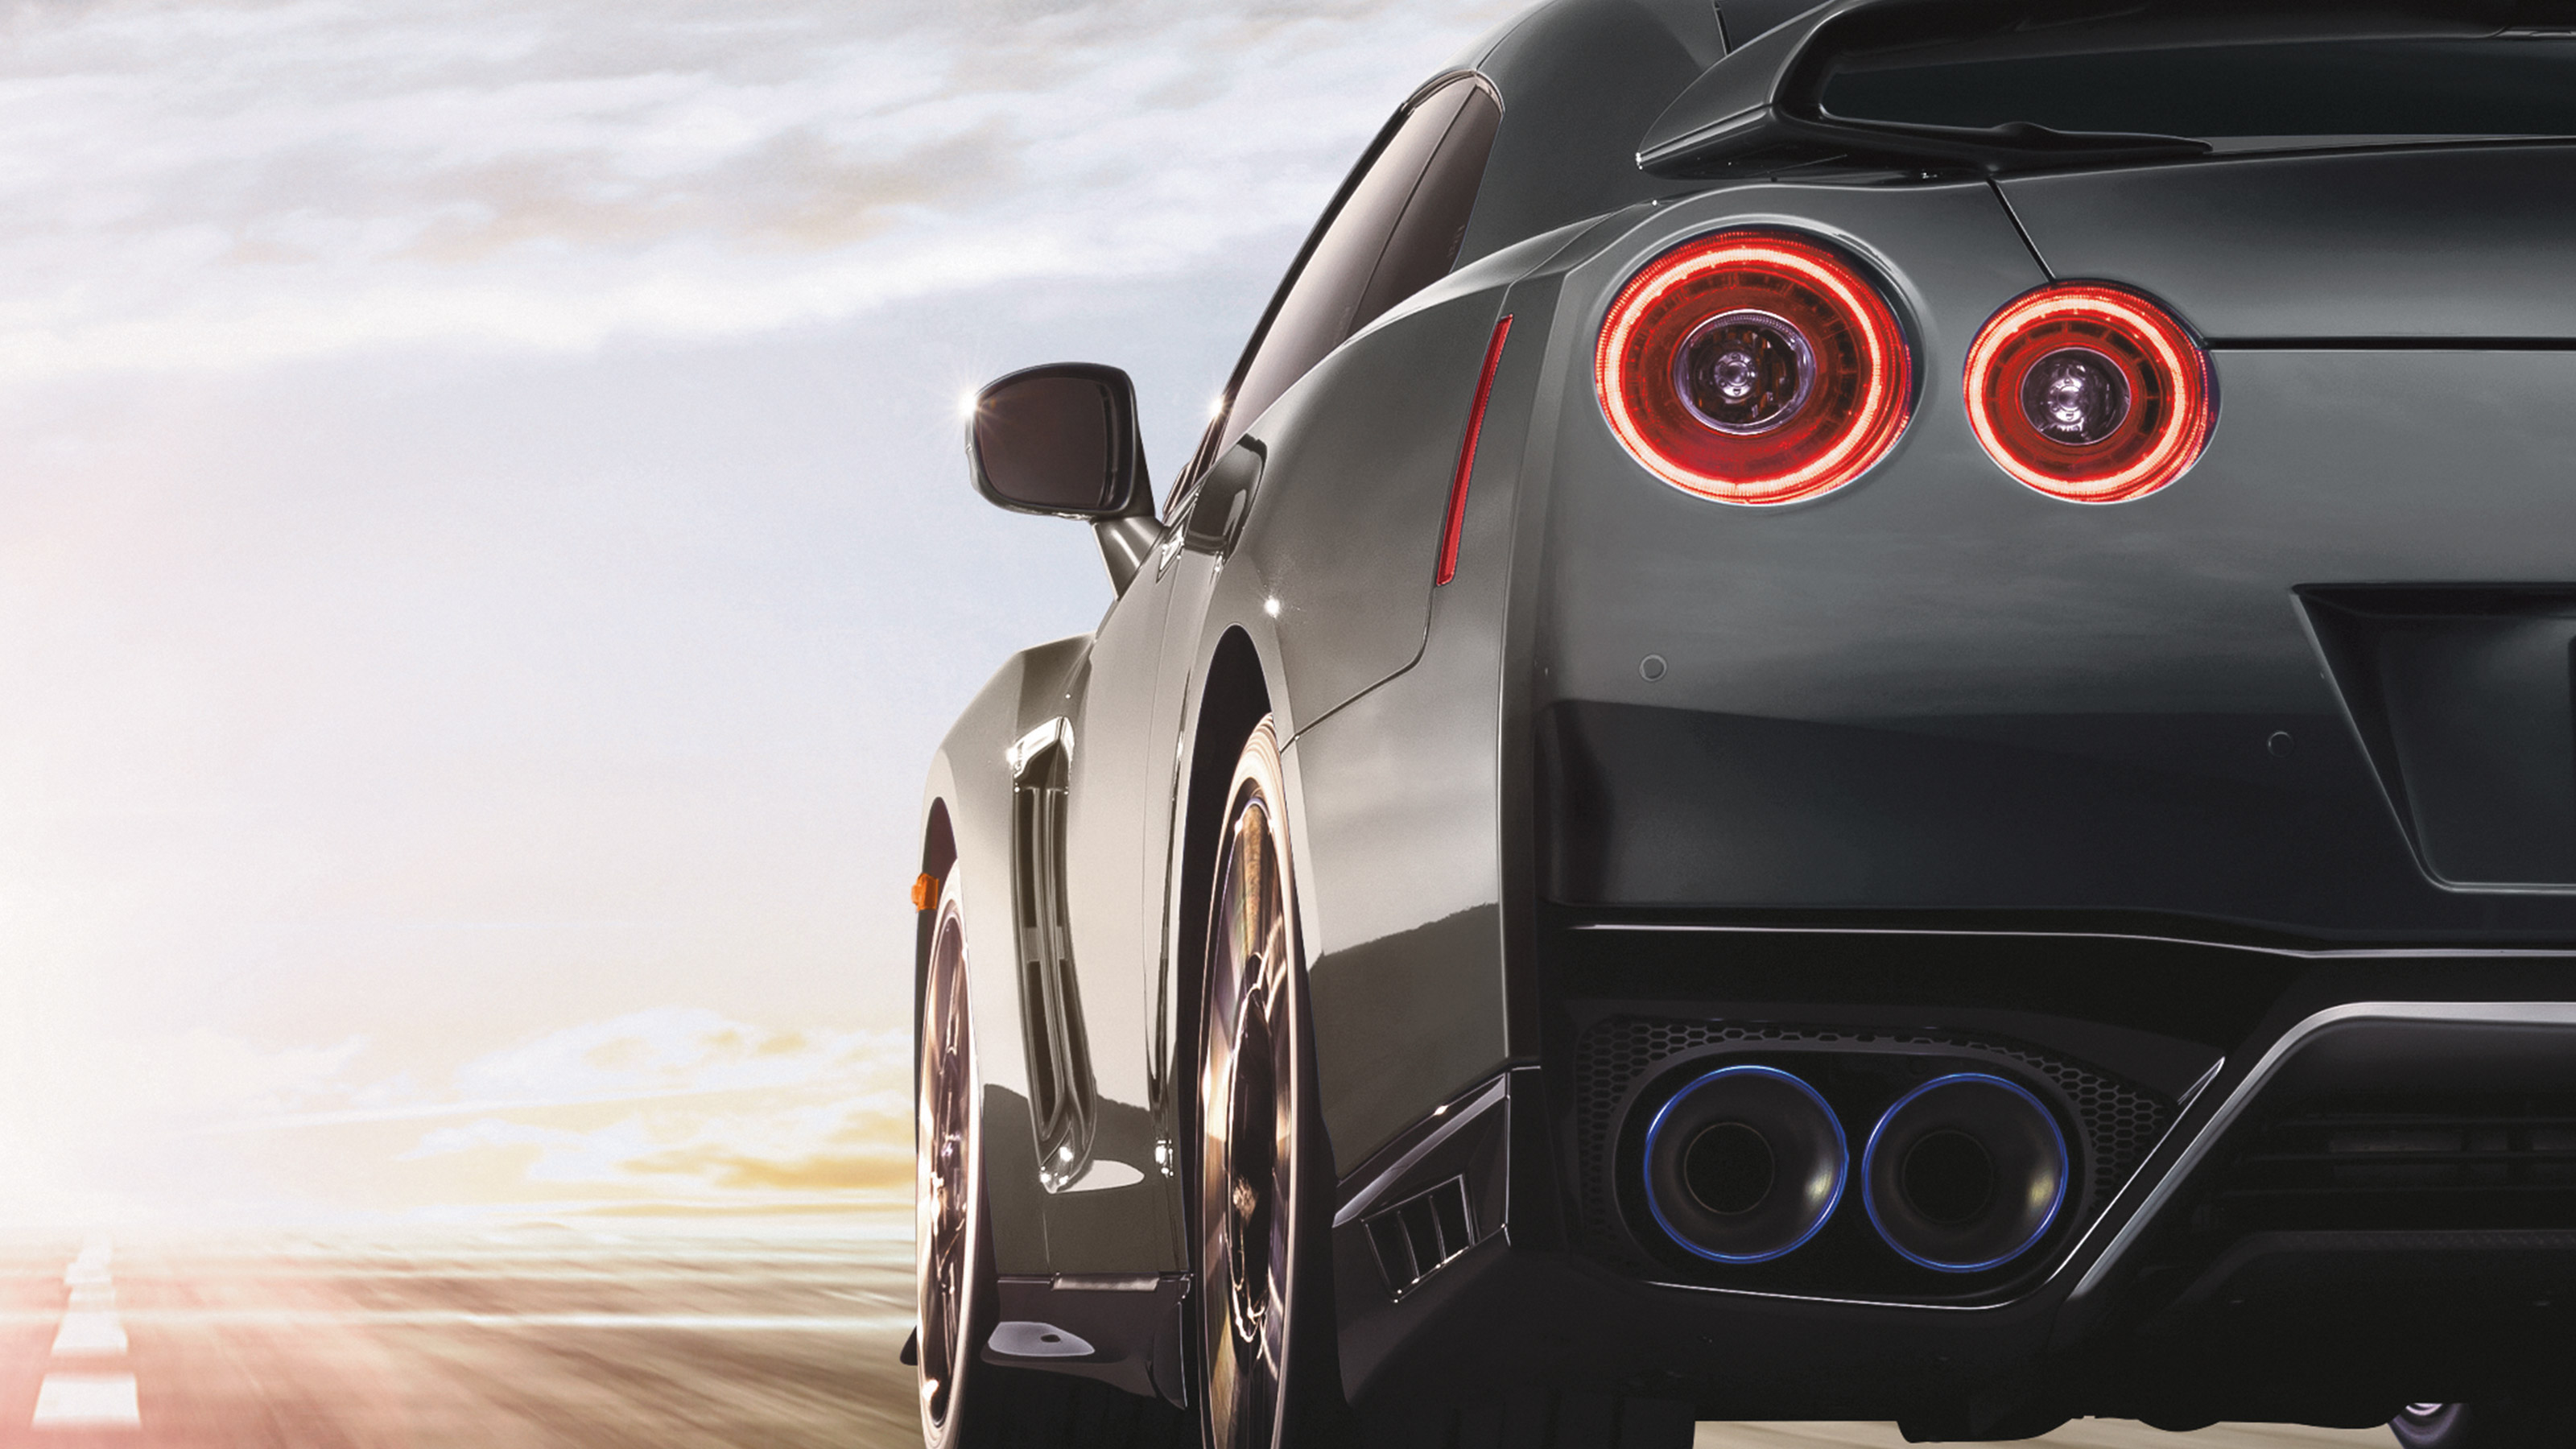 Nissan GT-R iconic round taillights